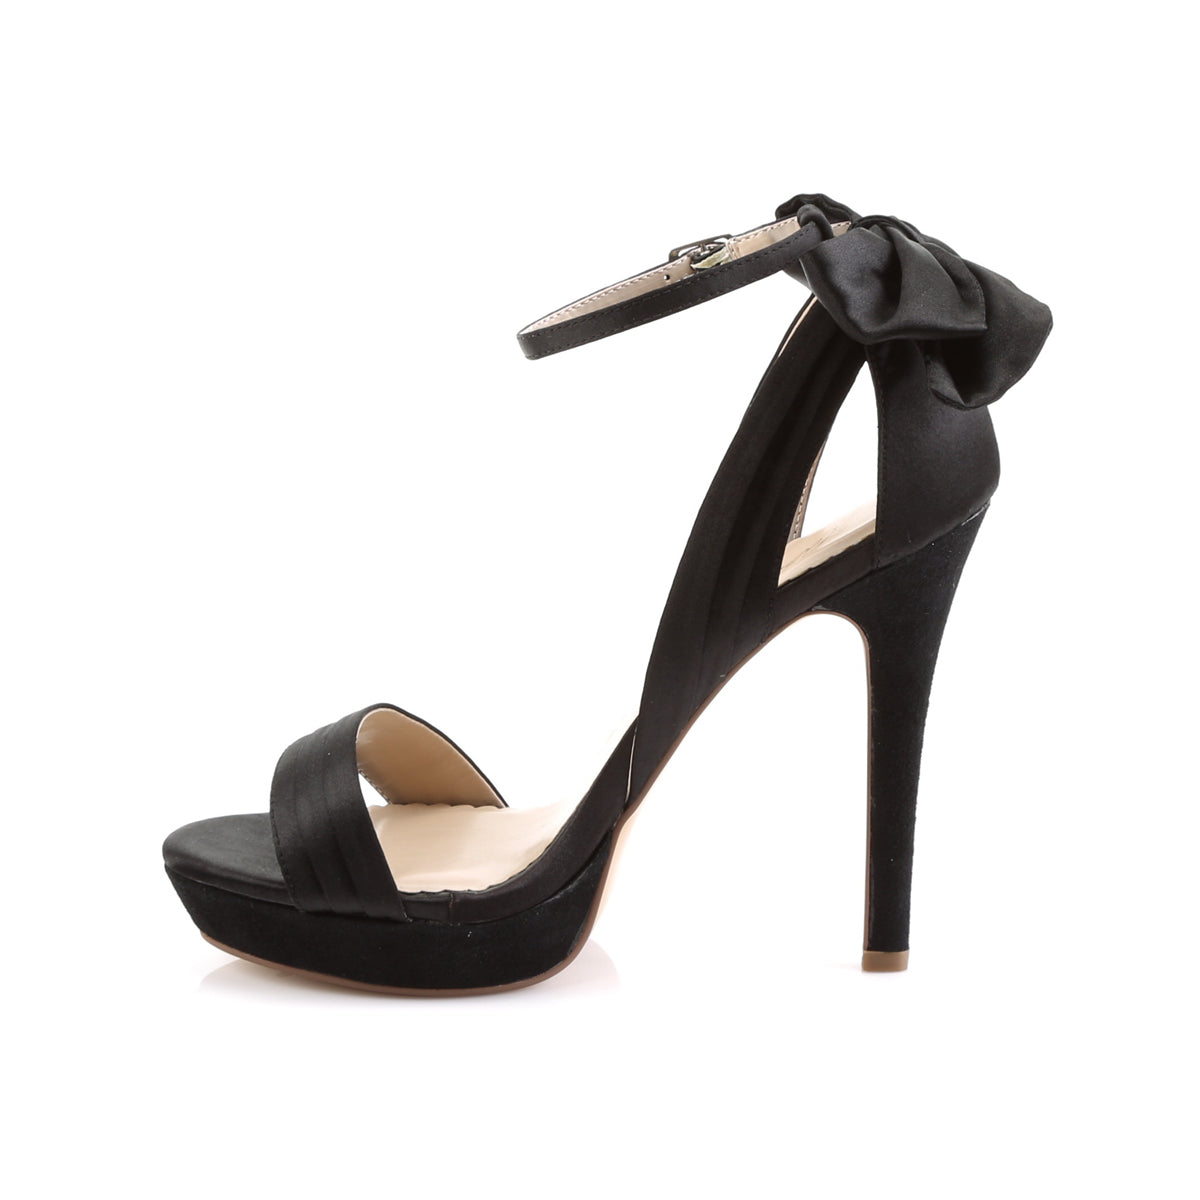 1d9107bd22b LUMINA-25 Fabulicious Sexy Shoes 4 3/4 Inch Heel Ankle Strap Sandals with  Bow